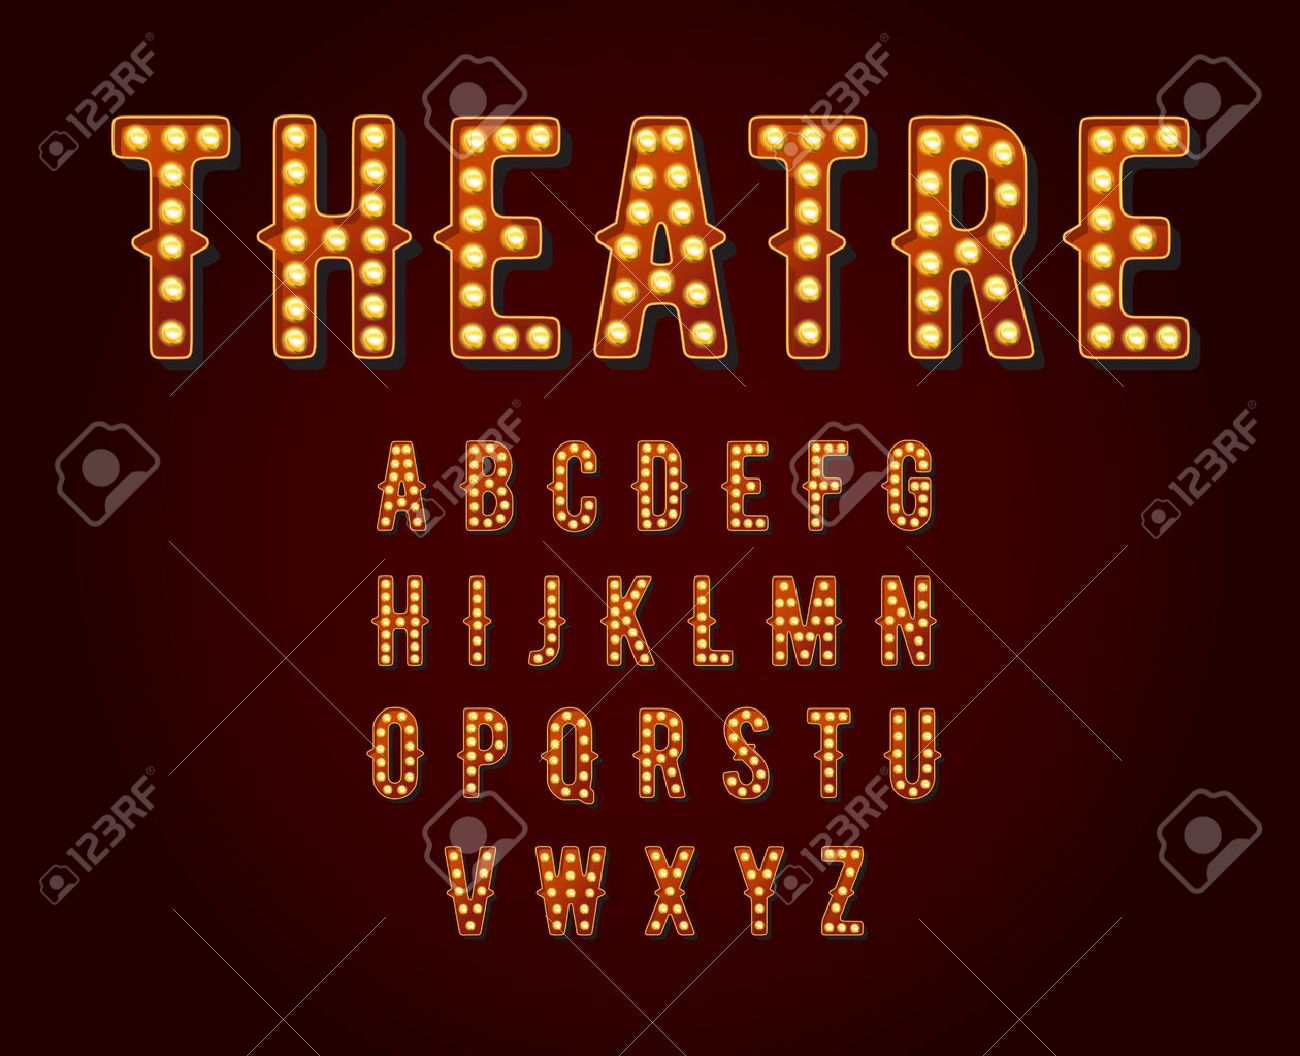 Casino or Broadway Signs style light bulb Alphabet - 50181014